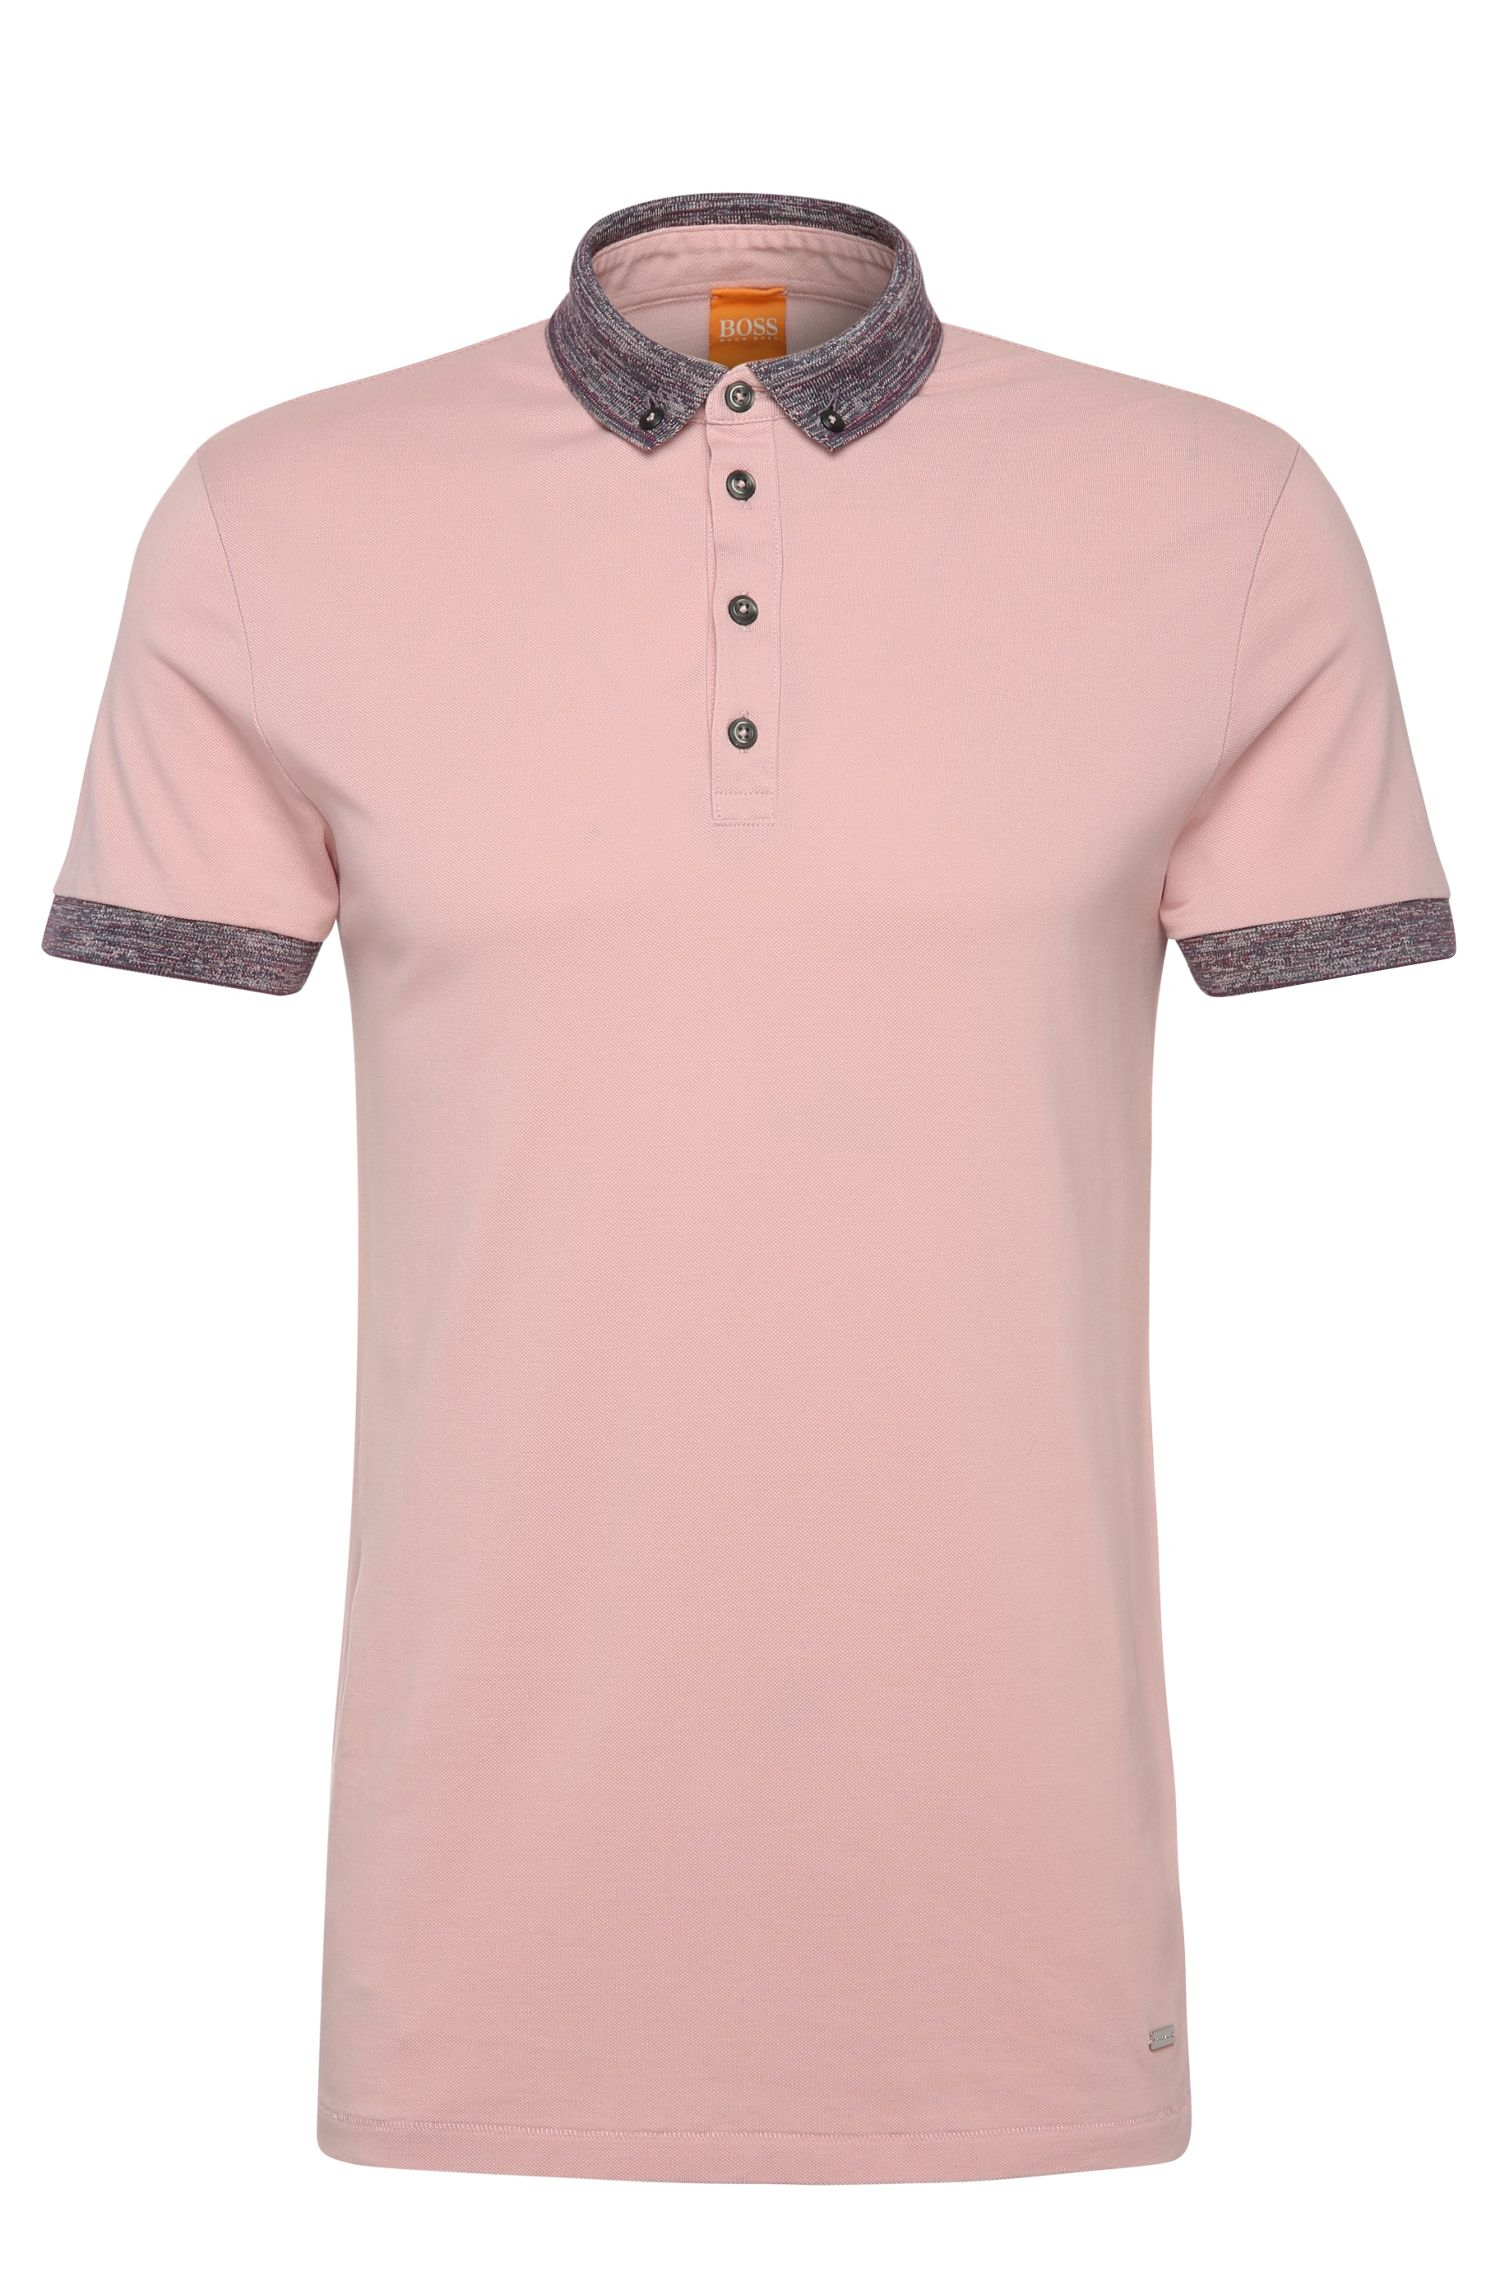 'Pilipe' | Slim Fit, Cotton Polo Shirt